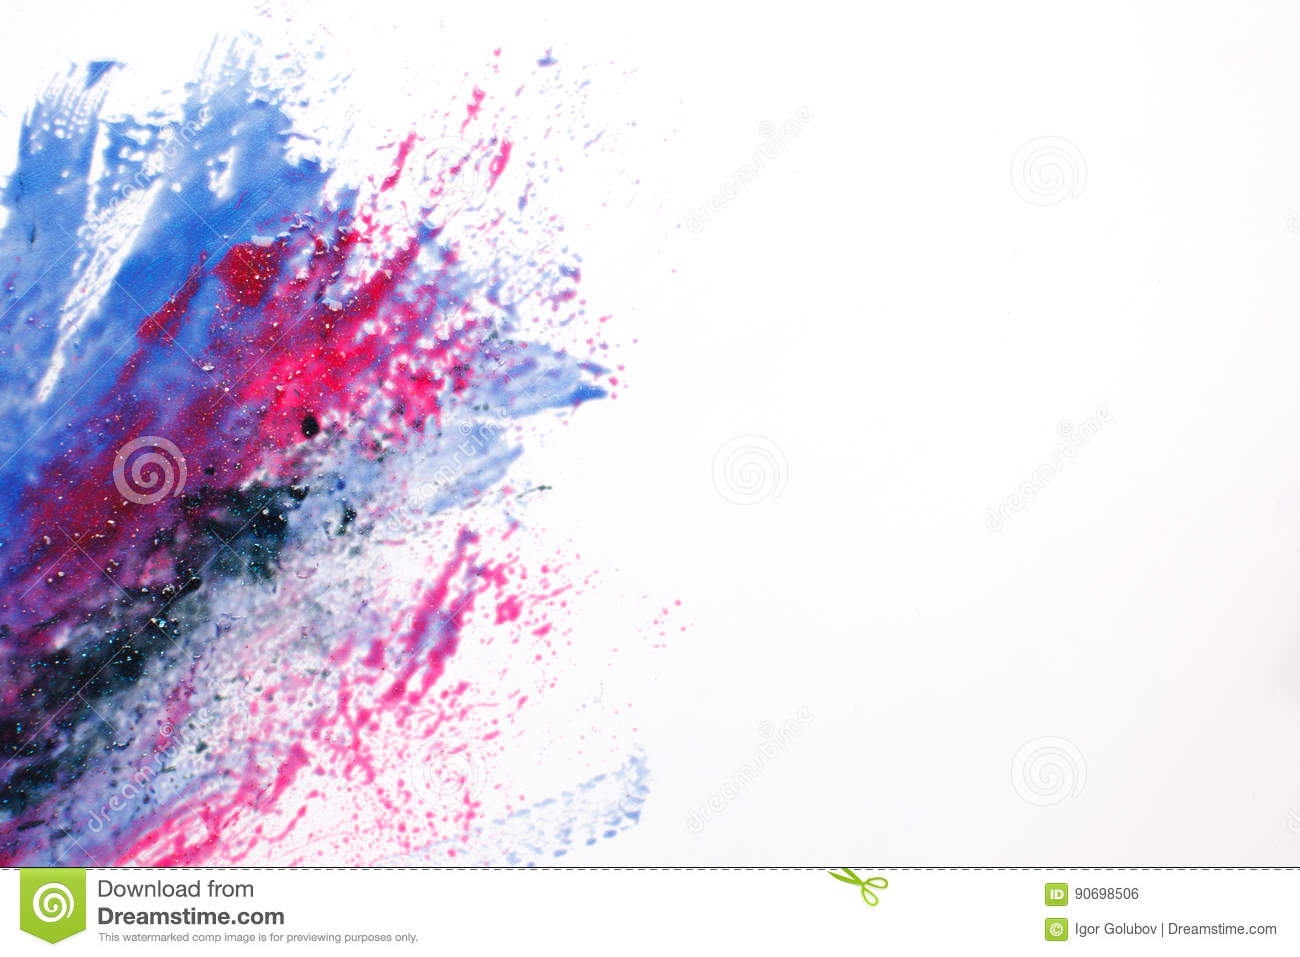 Creative space art, abstract galaxy, mixed colors